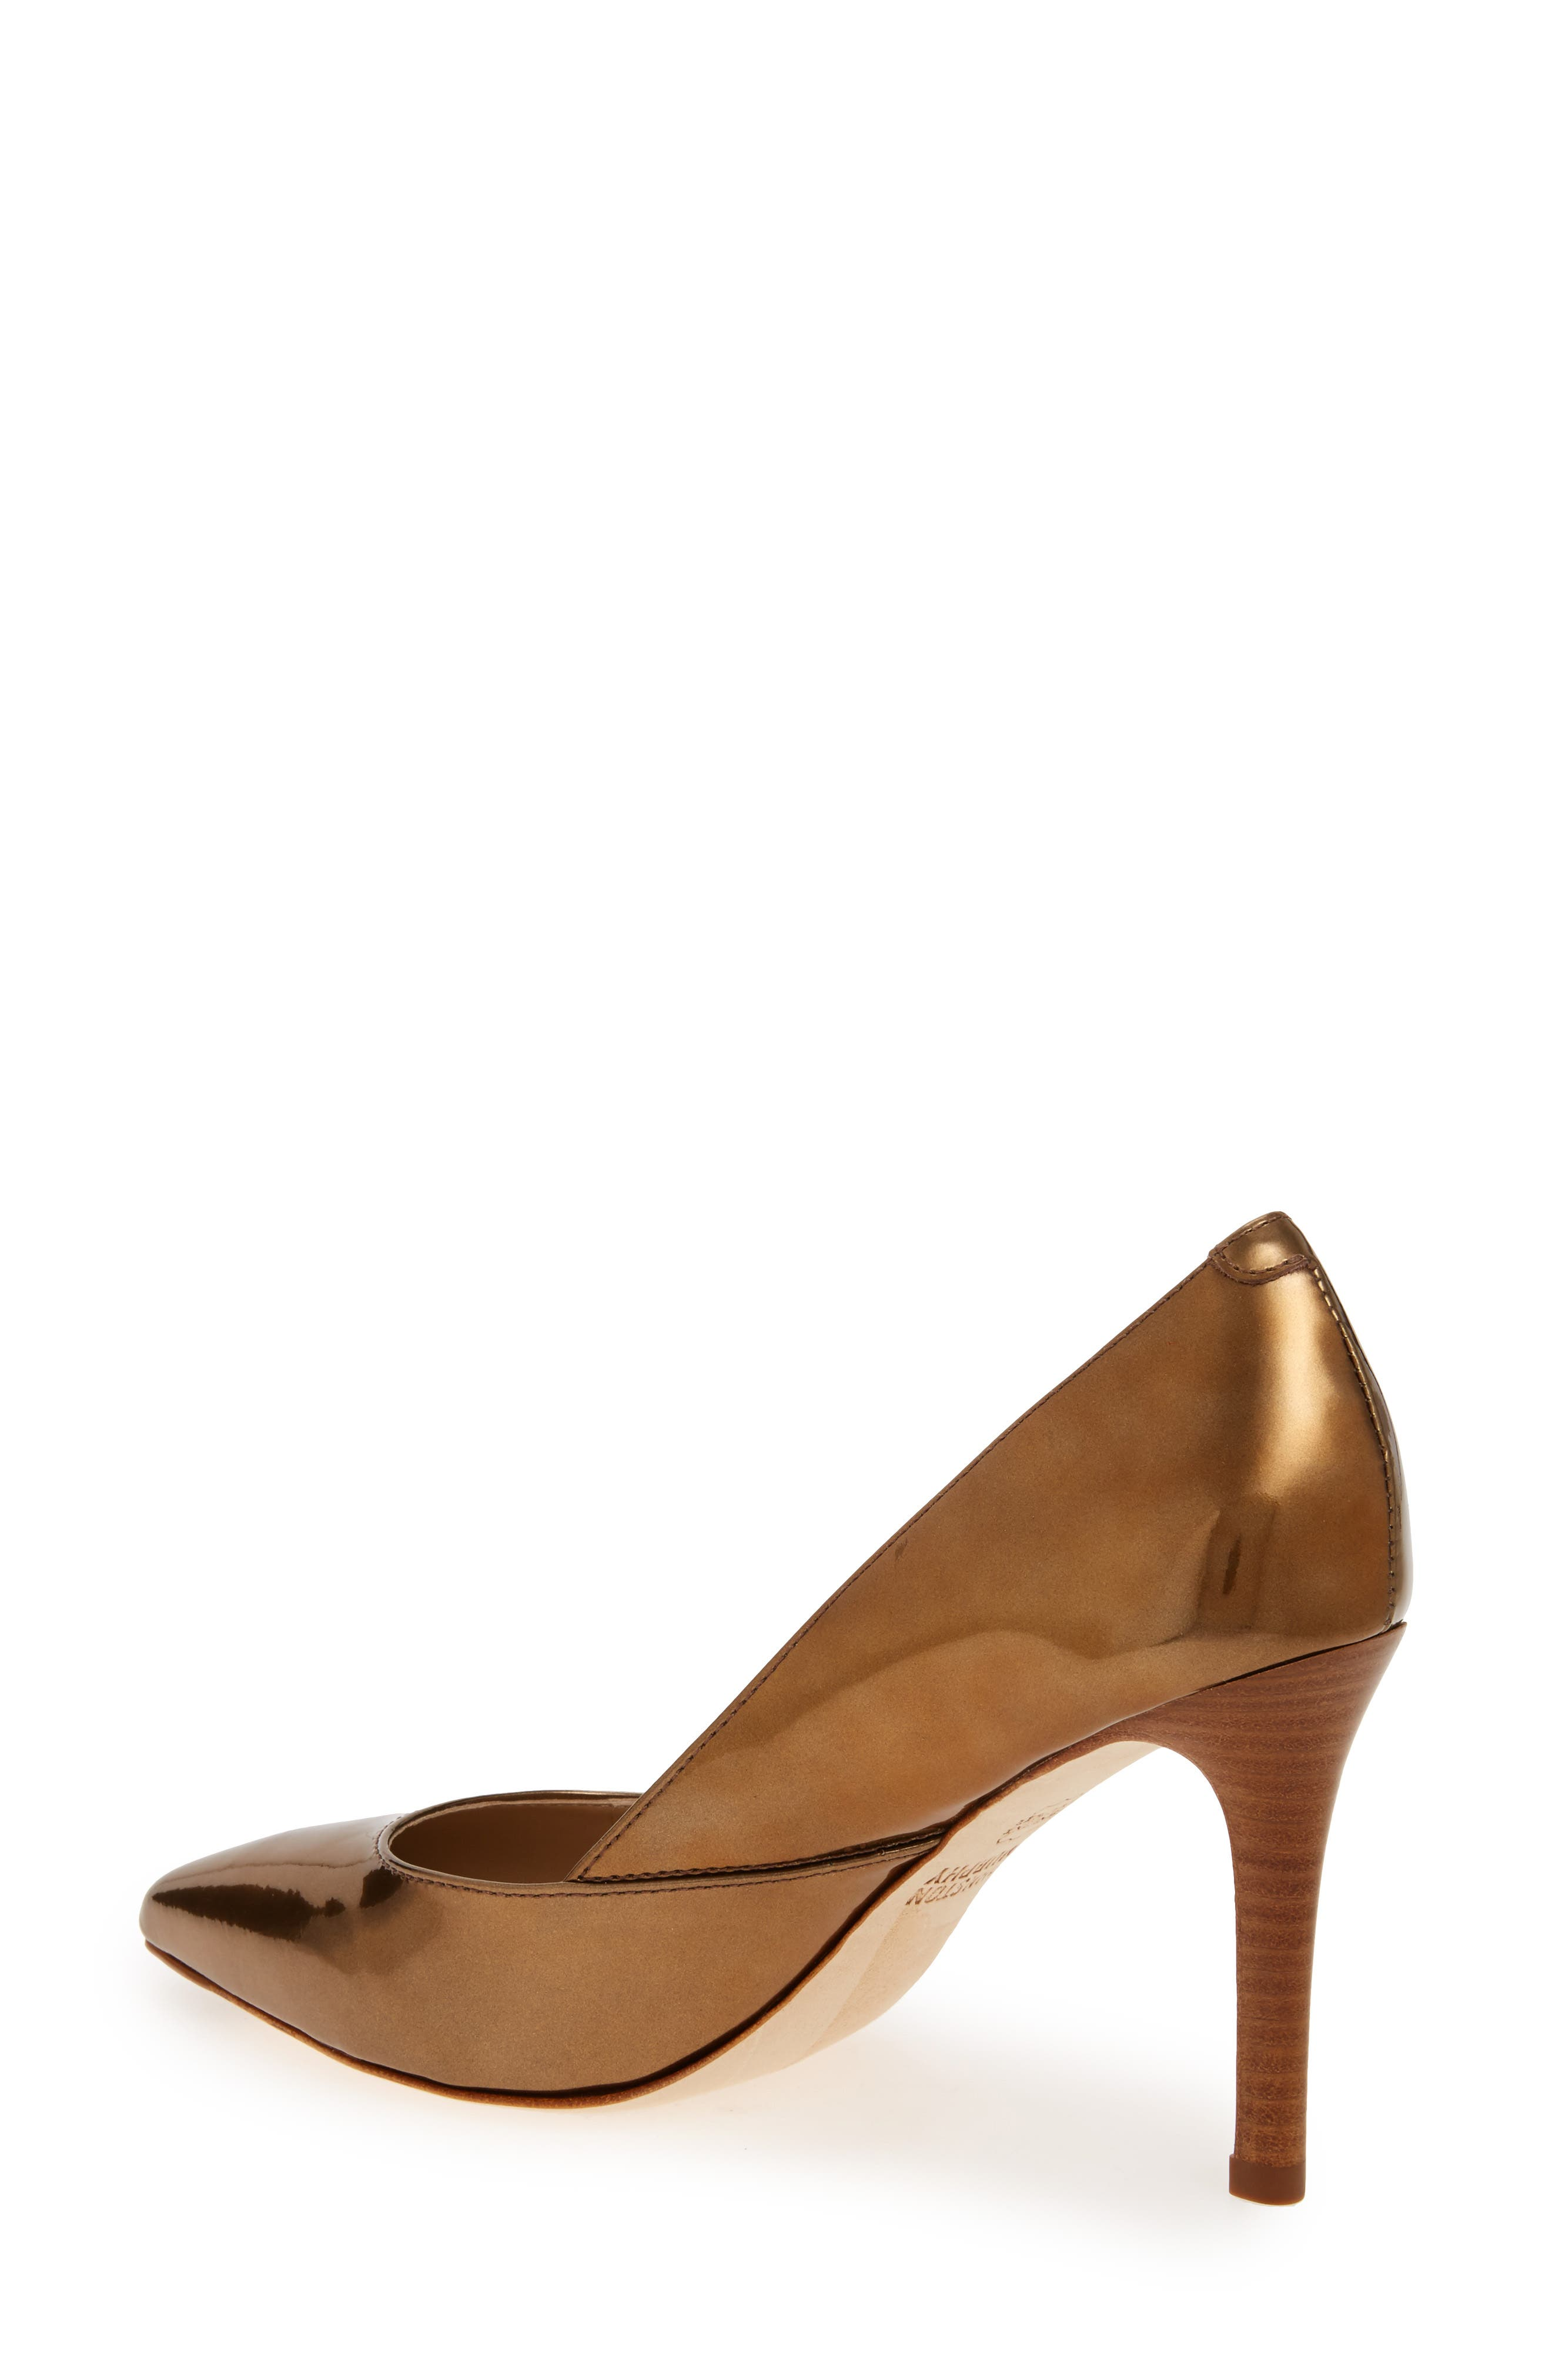 'Vanessa' Pointy Toe Leather Pump,                             Alternate thumbnail 15, color,